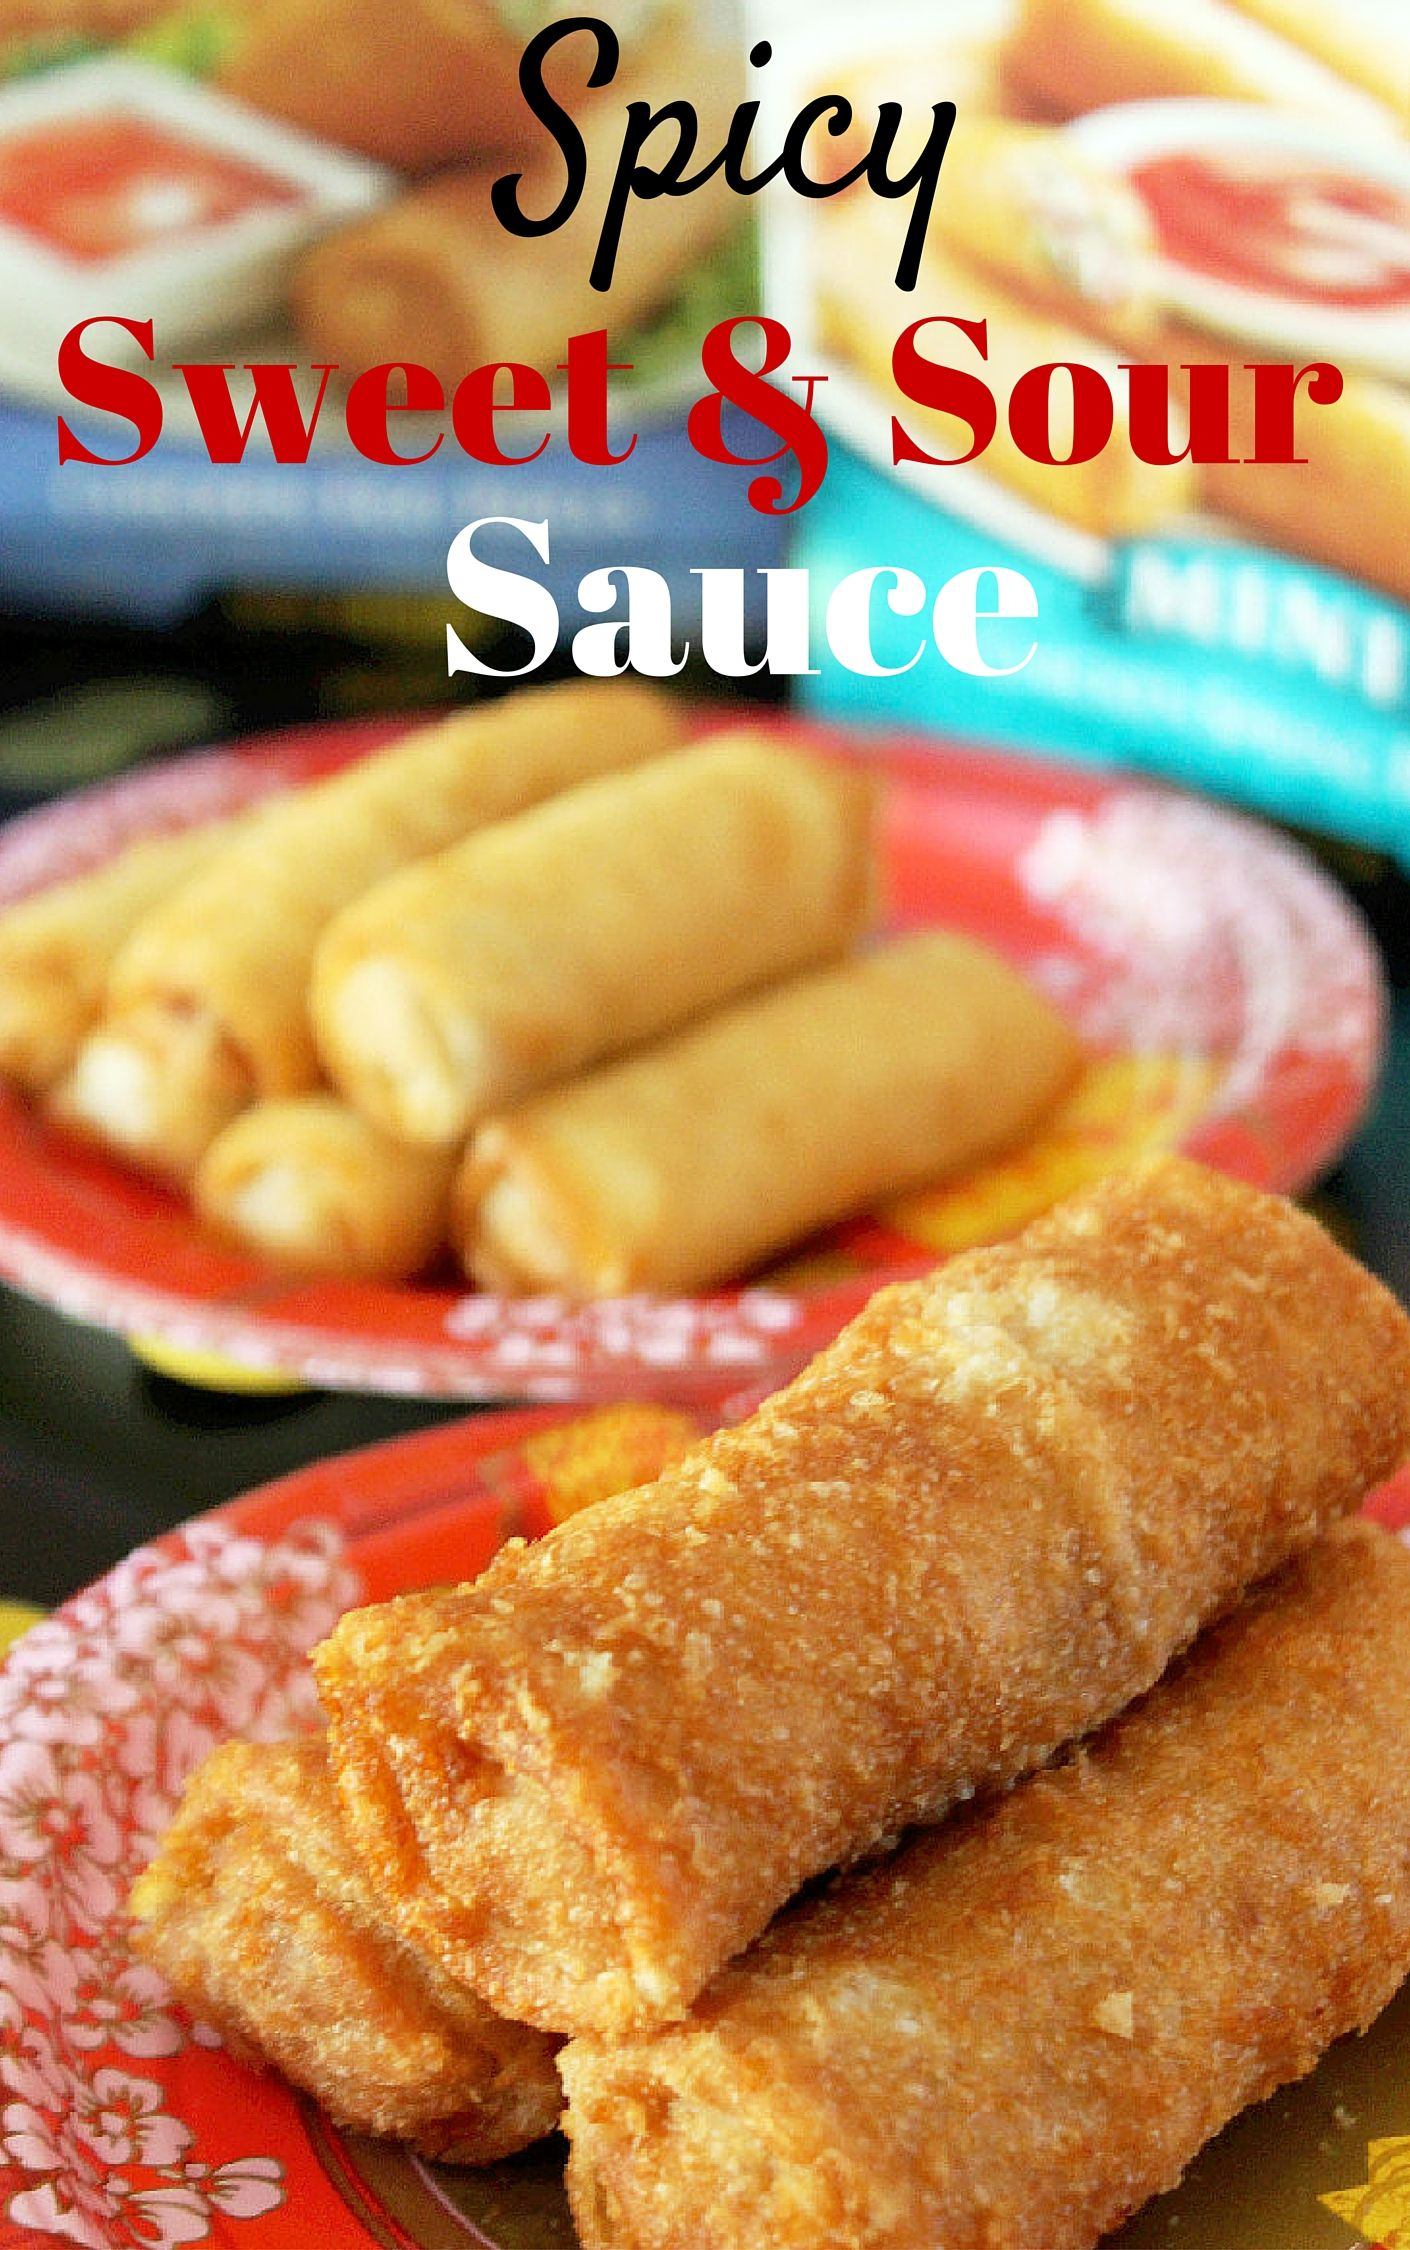 Spicy Sweet and Sour Sauce Celebrating Chinese New Year with Tai Pei®-Creole Contessa #NewYearFortune #Ad